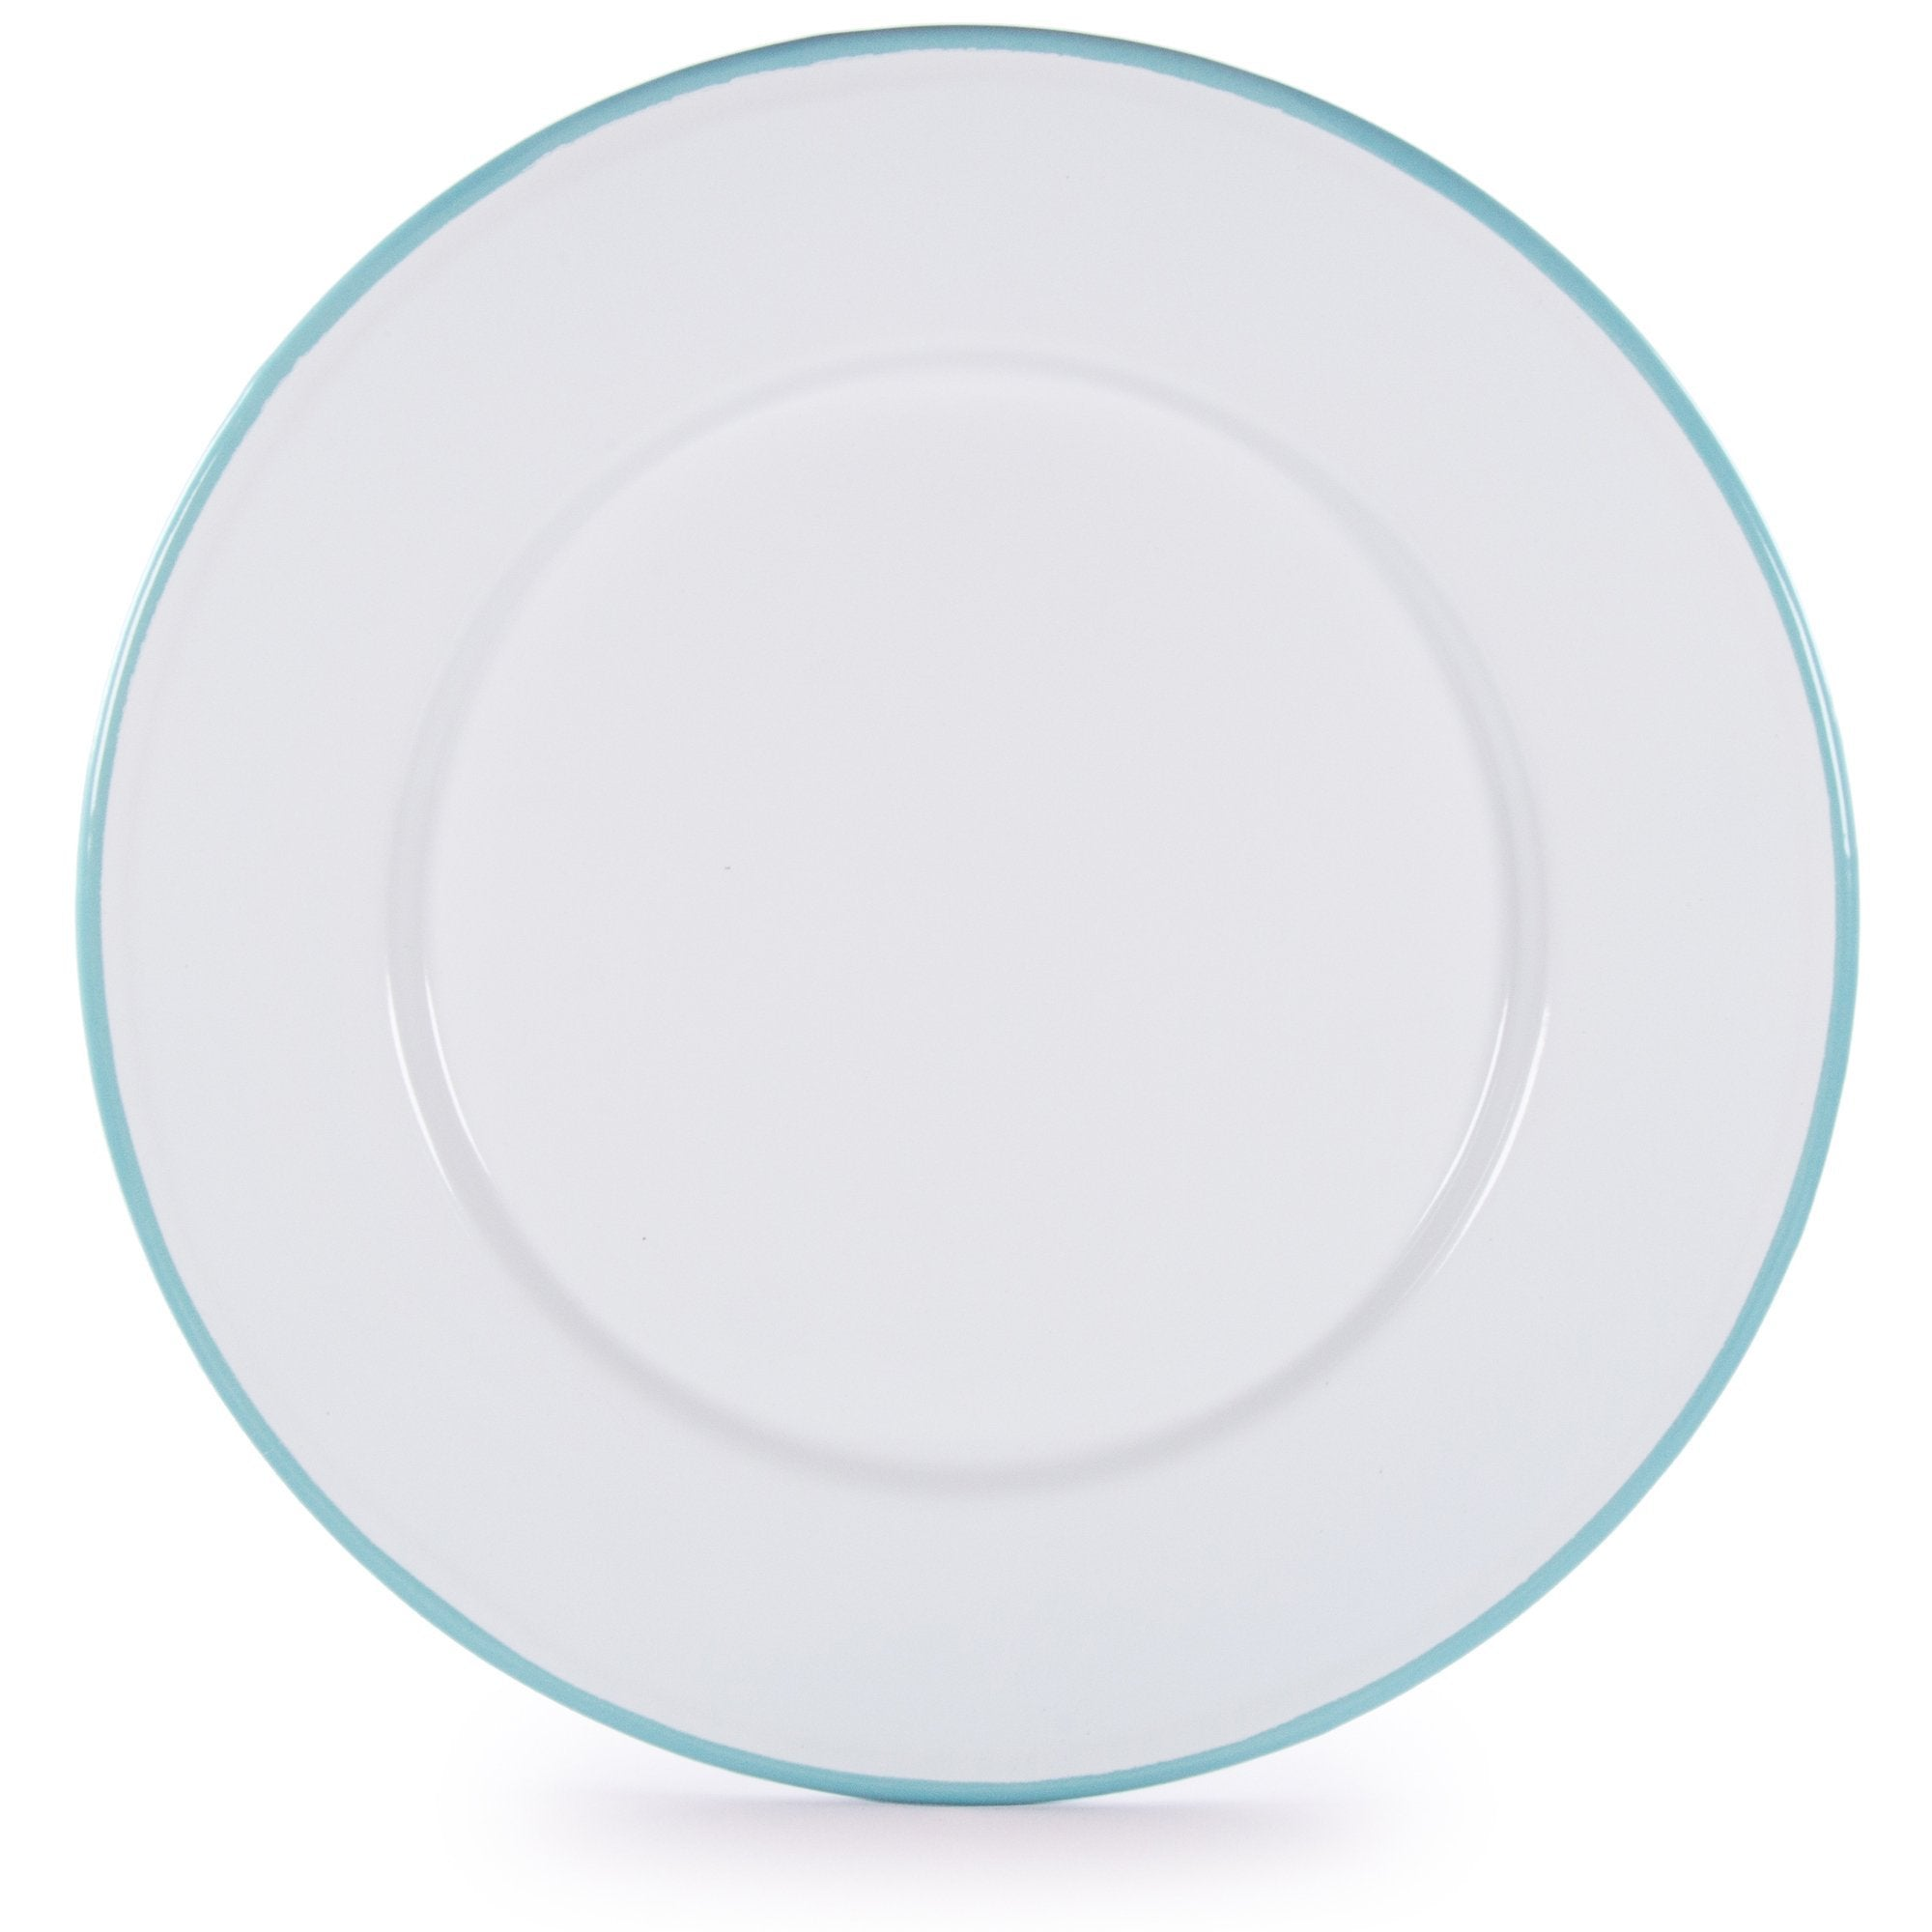 Glampware  Plates - White with Sea Glass Trim  - Set of 4